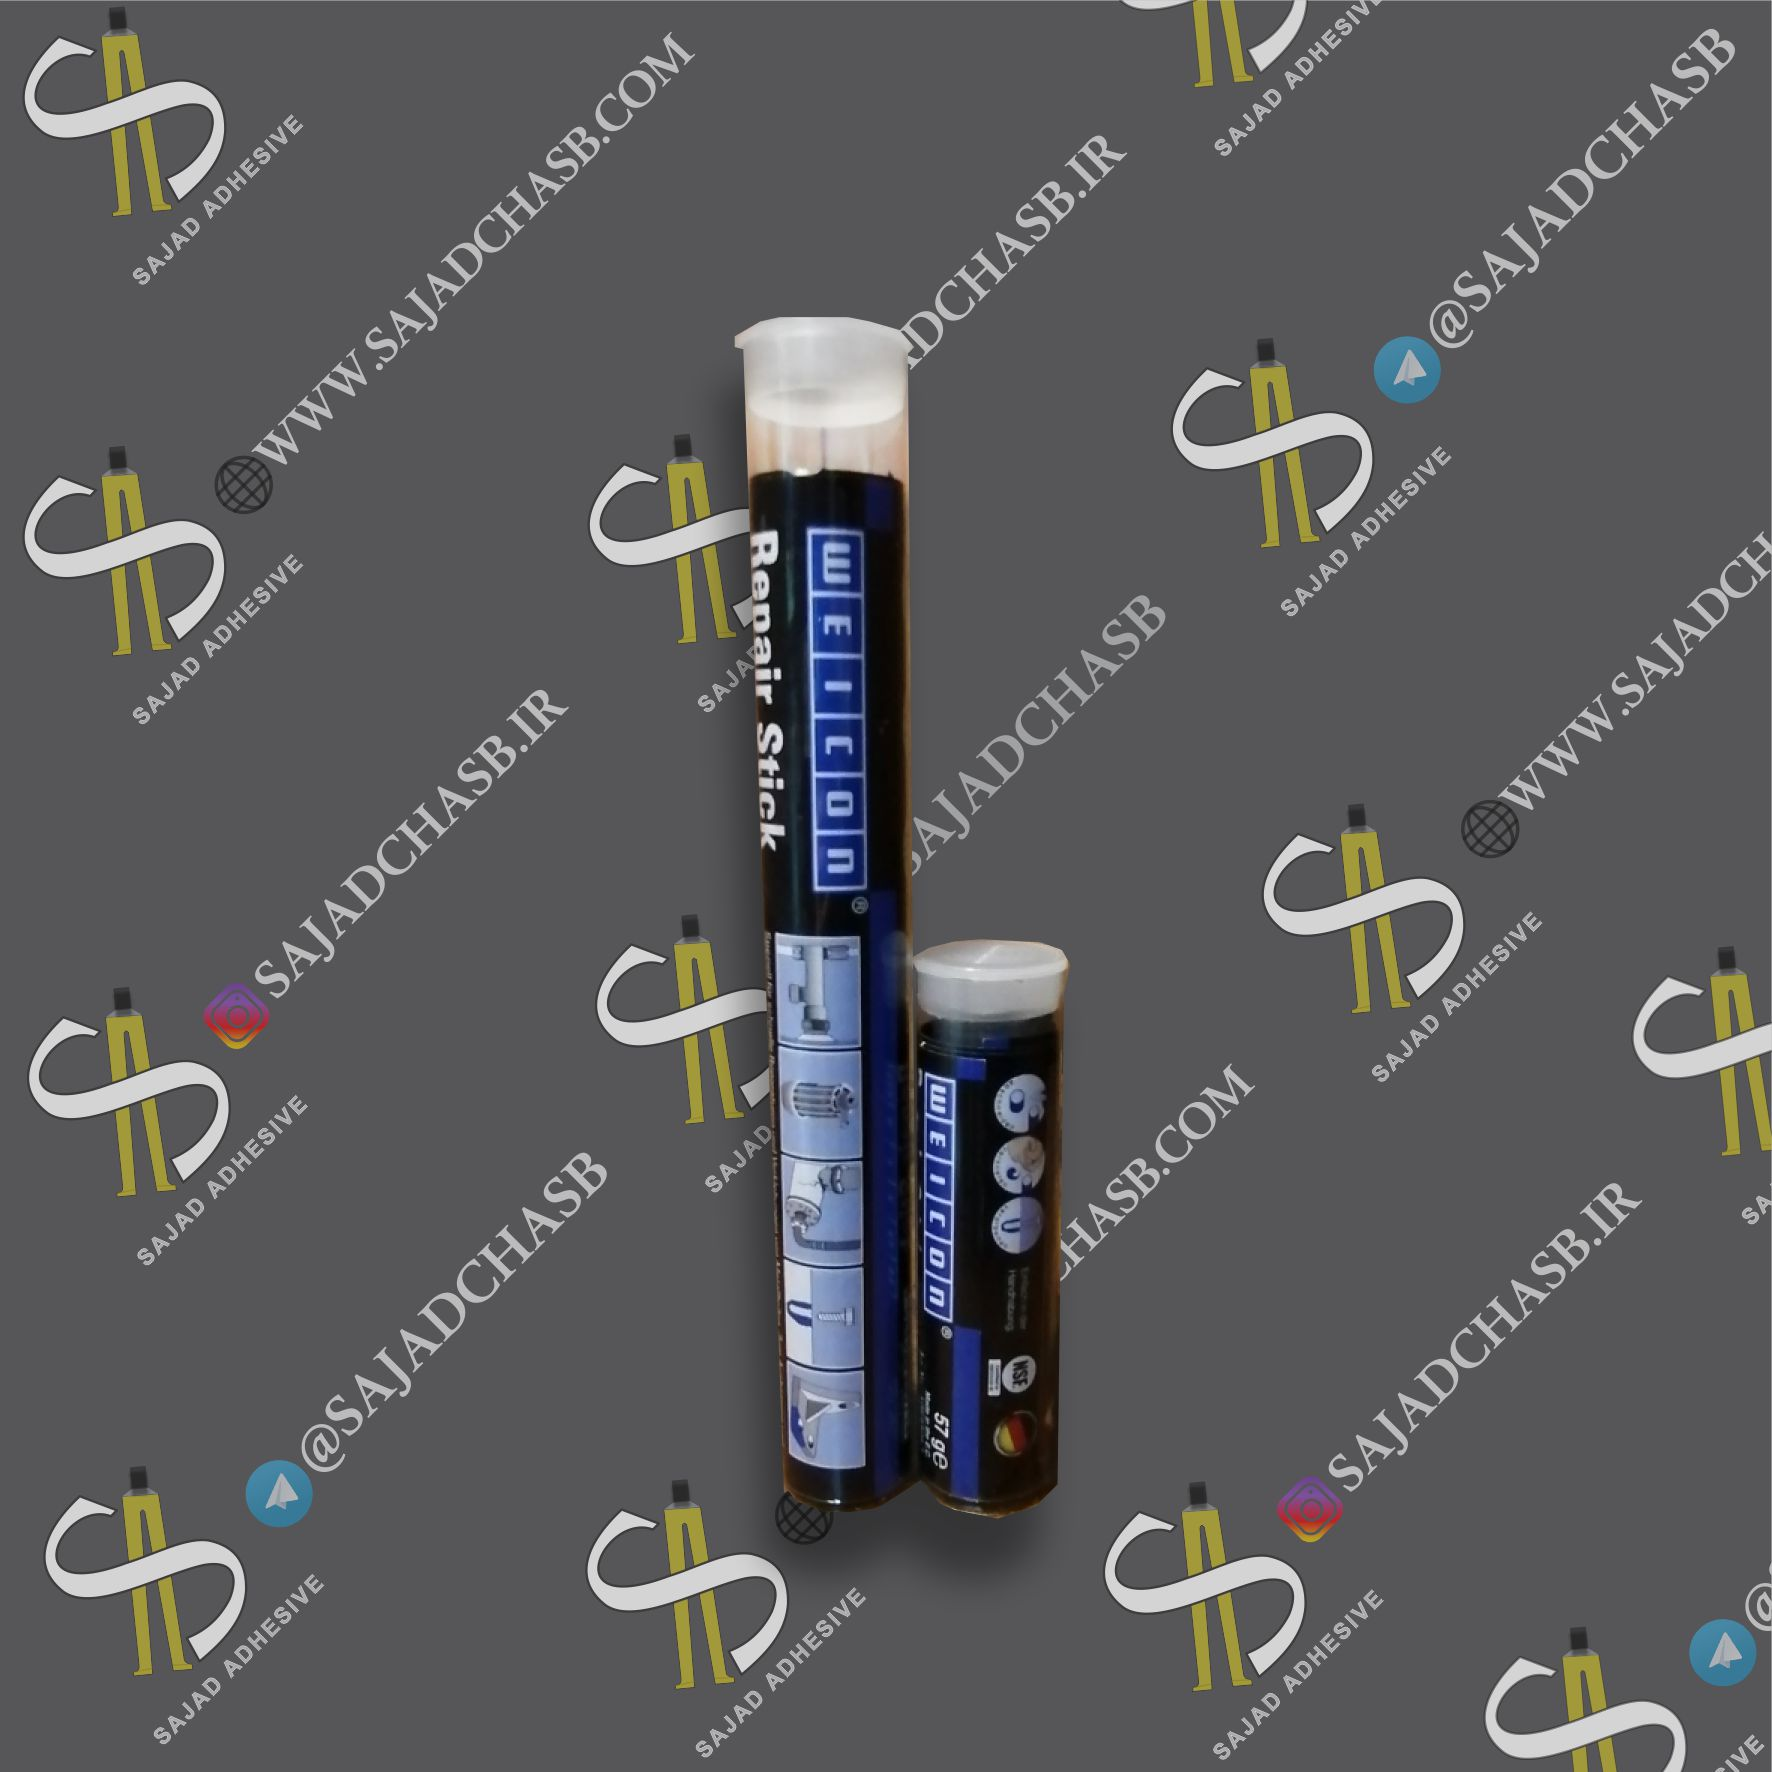 خمیر ترمیمی چدن WEICON Repair Stick